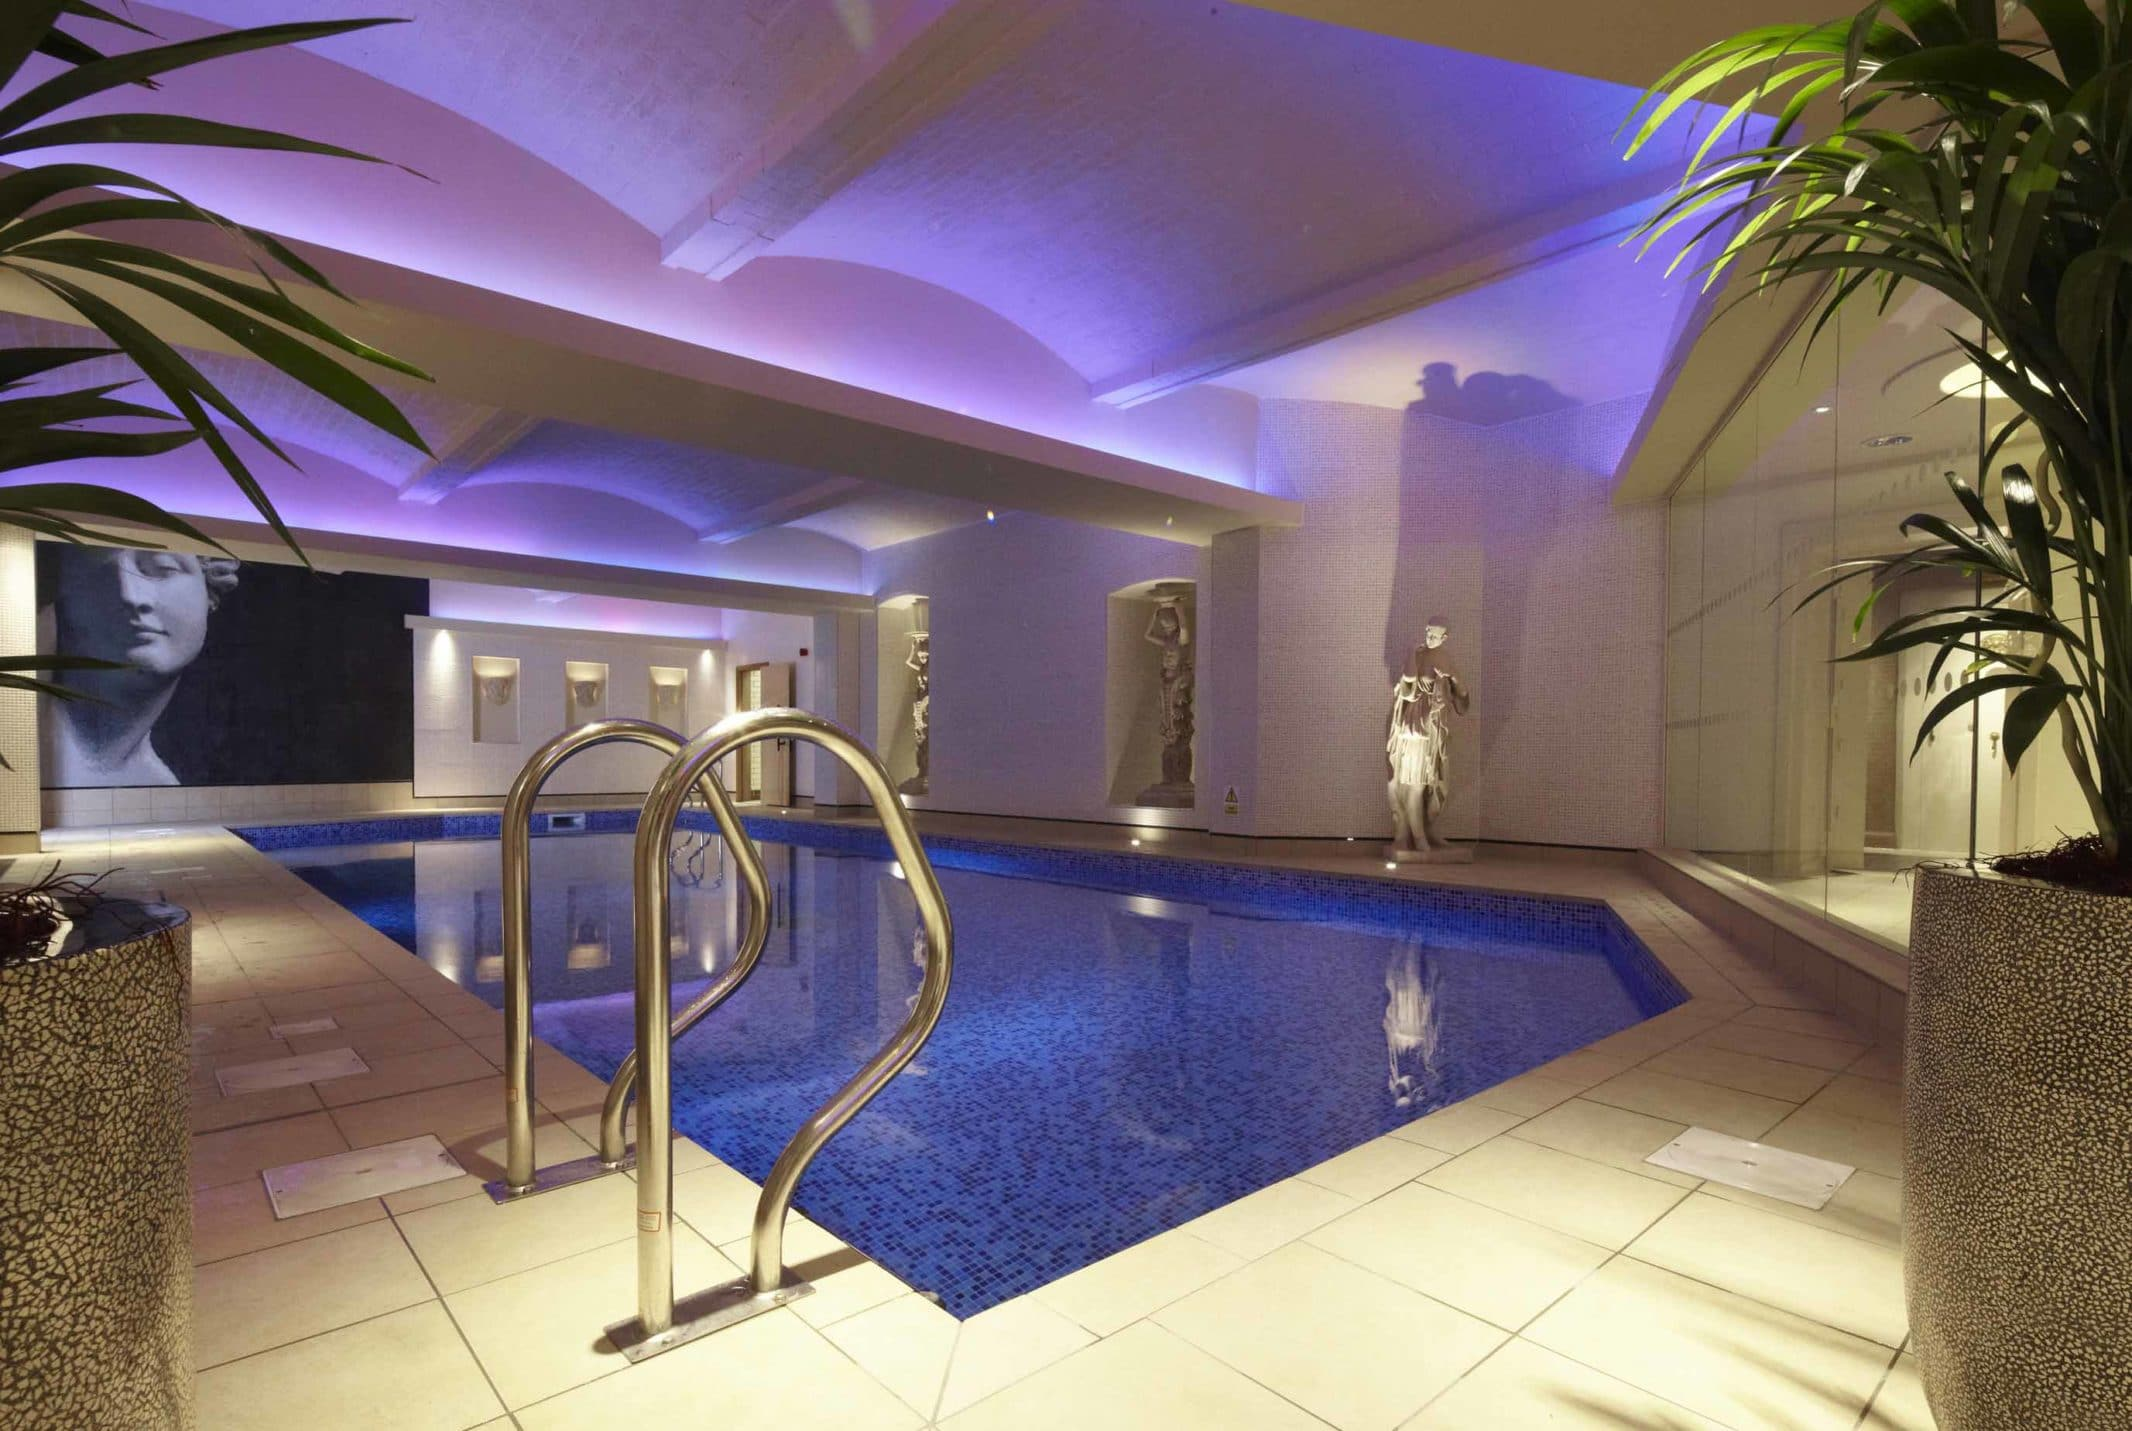 The underground swimming pool at The Grand Hotel and Spa, York